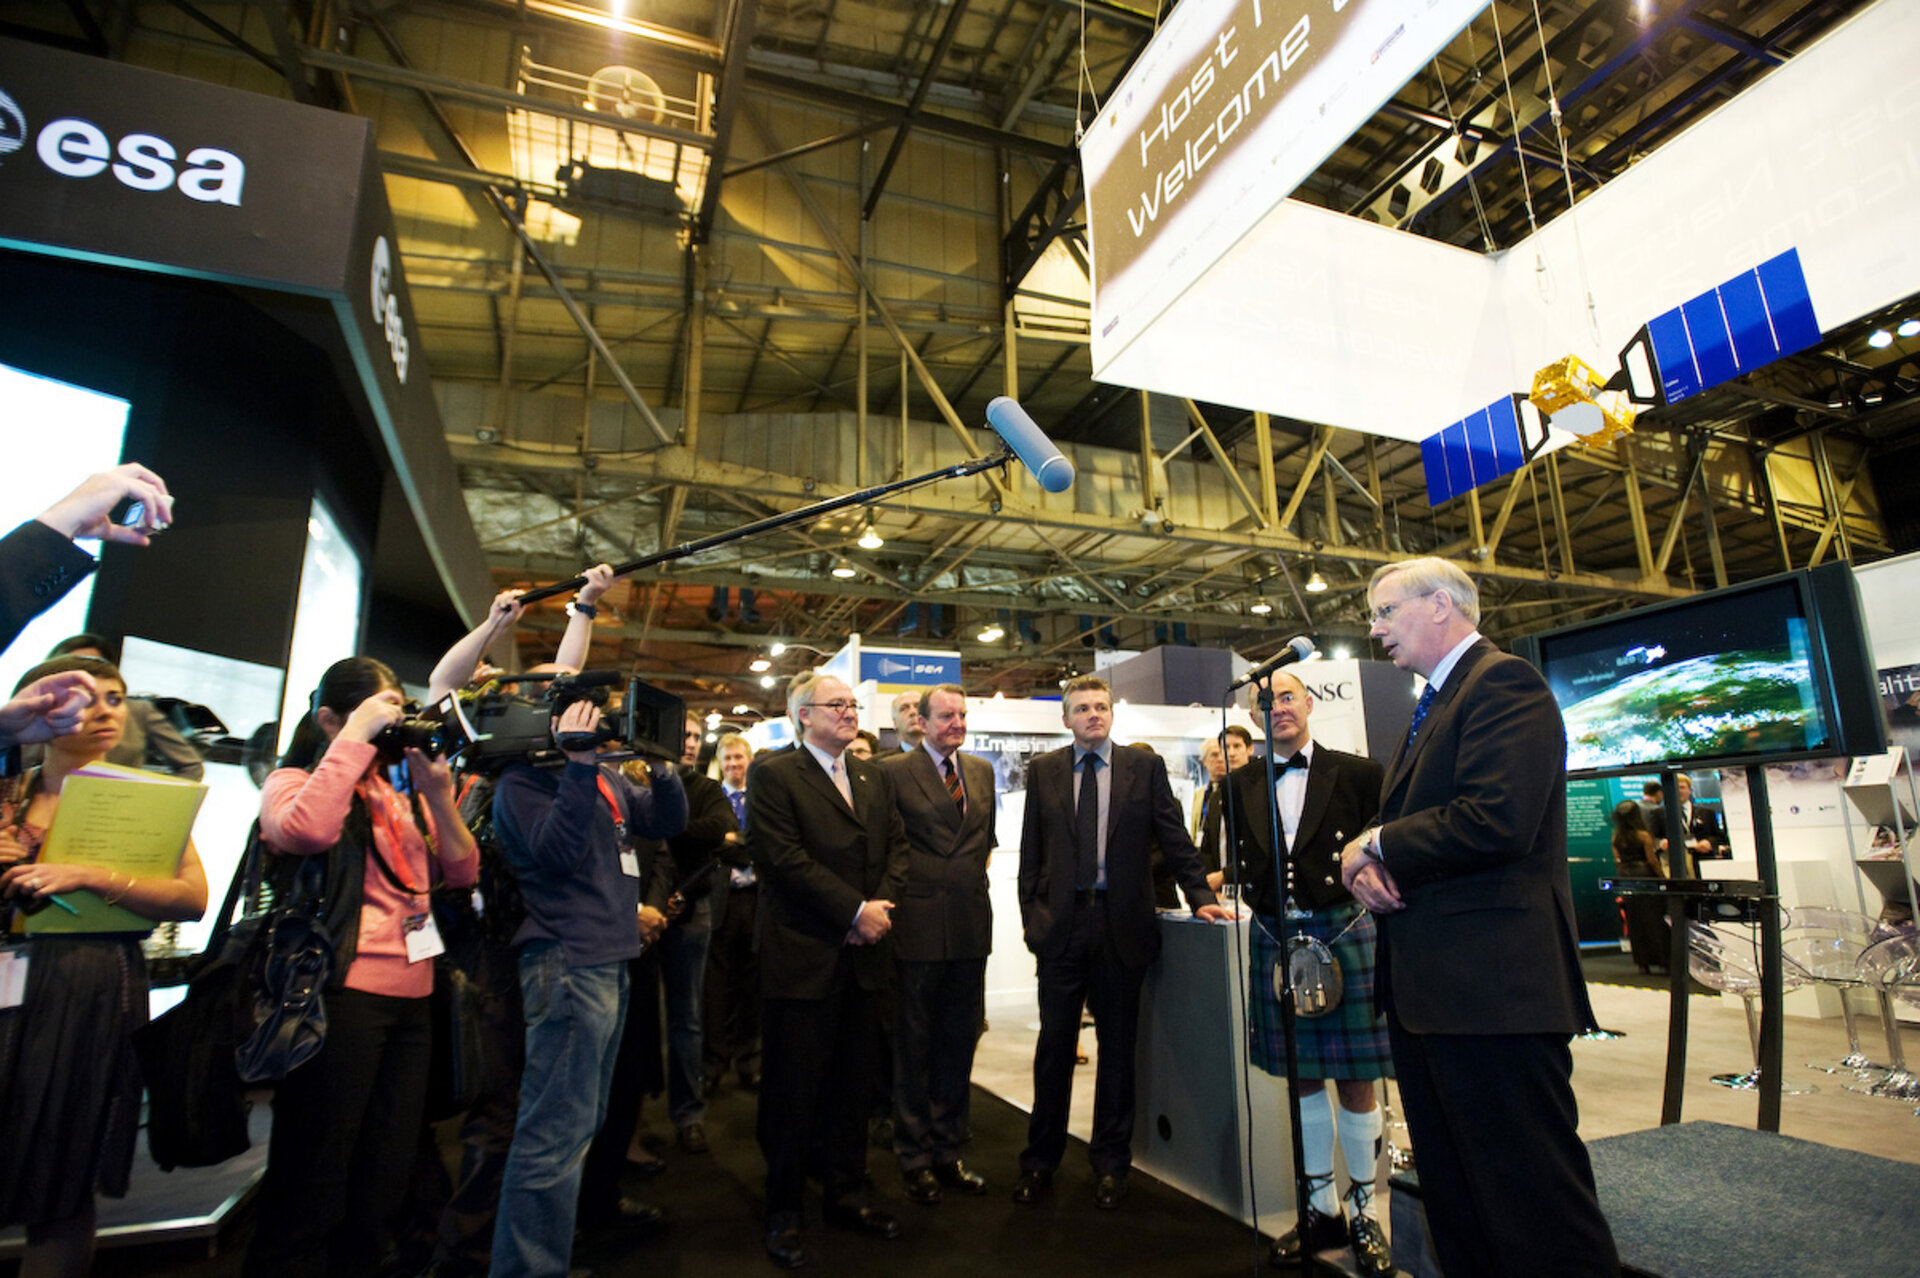 Prince Richard, Duke of Gloucester, addresses the media at the ESA stand during the inauguration of the exhibition at IAC 2008